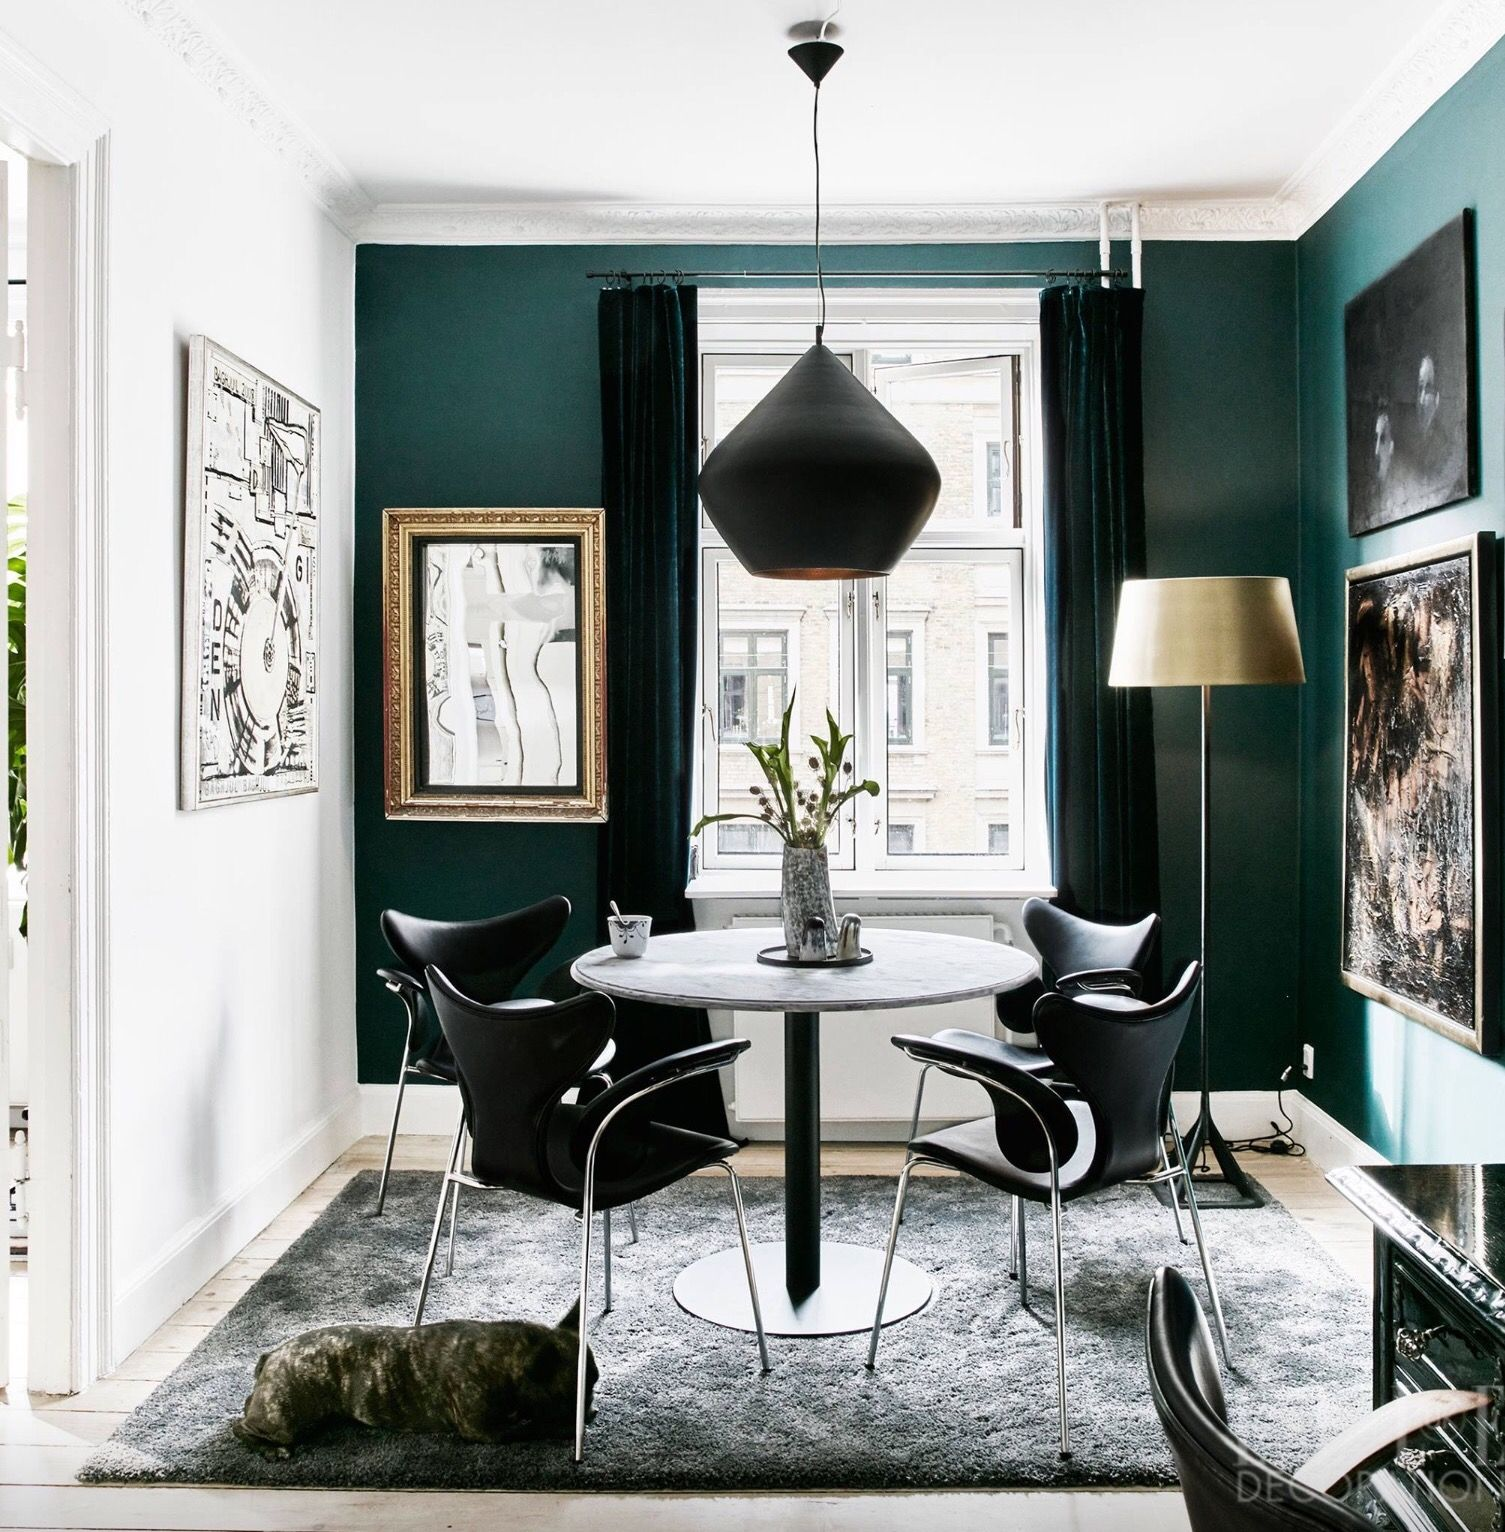 •the dark green works well with touches of gold against it